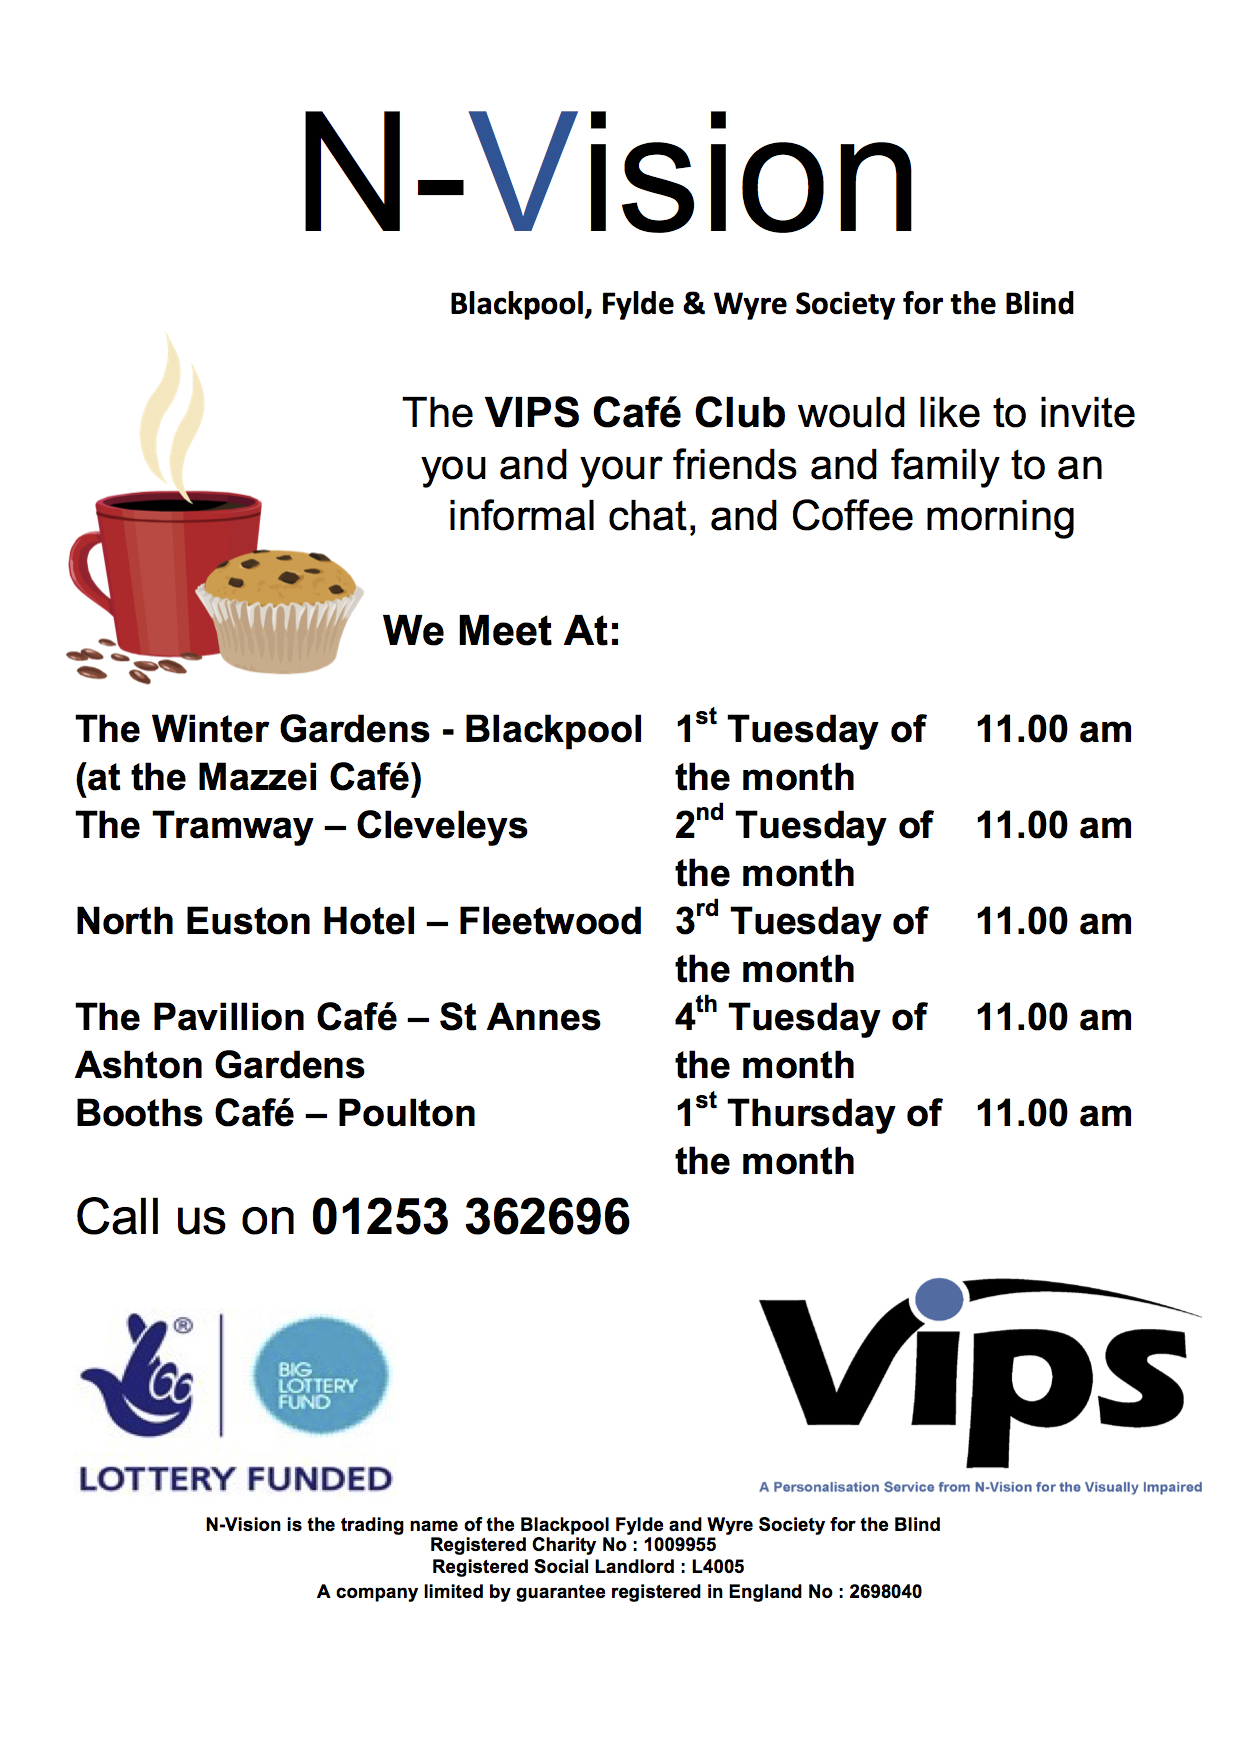 The VIPS Café Club would like to invite you and your friends and family to an informal chat, and Coffee morning   We Meet At:   The Winter Gardens - Blackpool 1st Tuesday of 11.00 am (at the Mazzei Café)the month The Tramway – Cleveleys2nd Tuesday of11.00 am the month North Euston Hotel – Fleetwood3rd Tuesday of11.00 am the month The Pavillion Café – St Annes4th Tuesday of11.00 am Ashton Gardensthe month Booths Café – Poulton1st Thursday of11.00 am the month Call us on 01253 362696